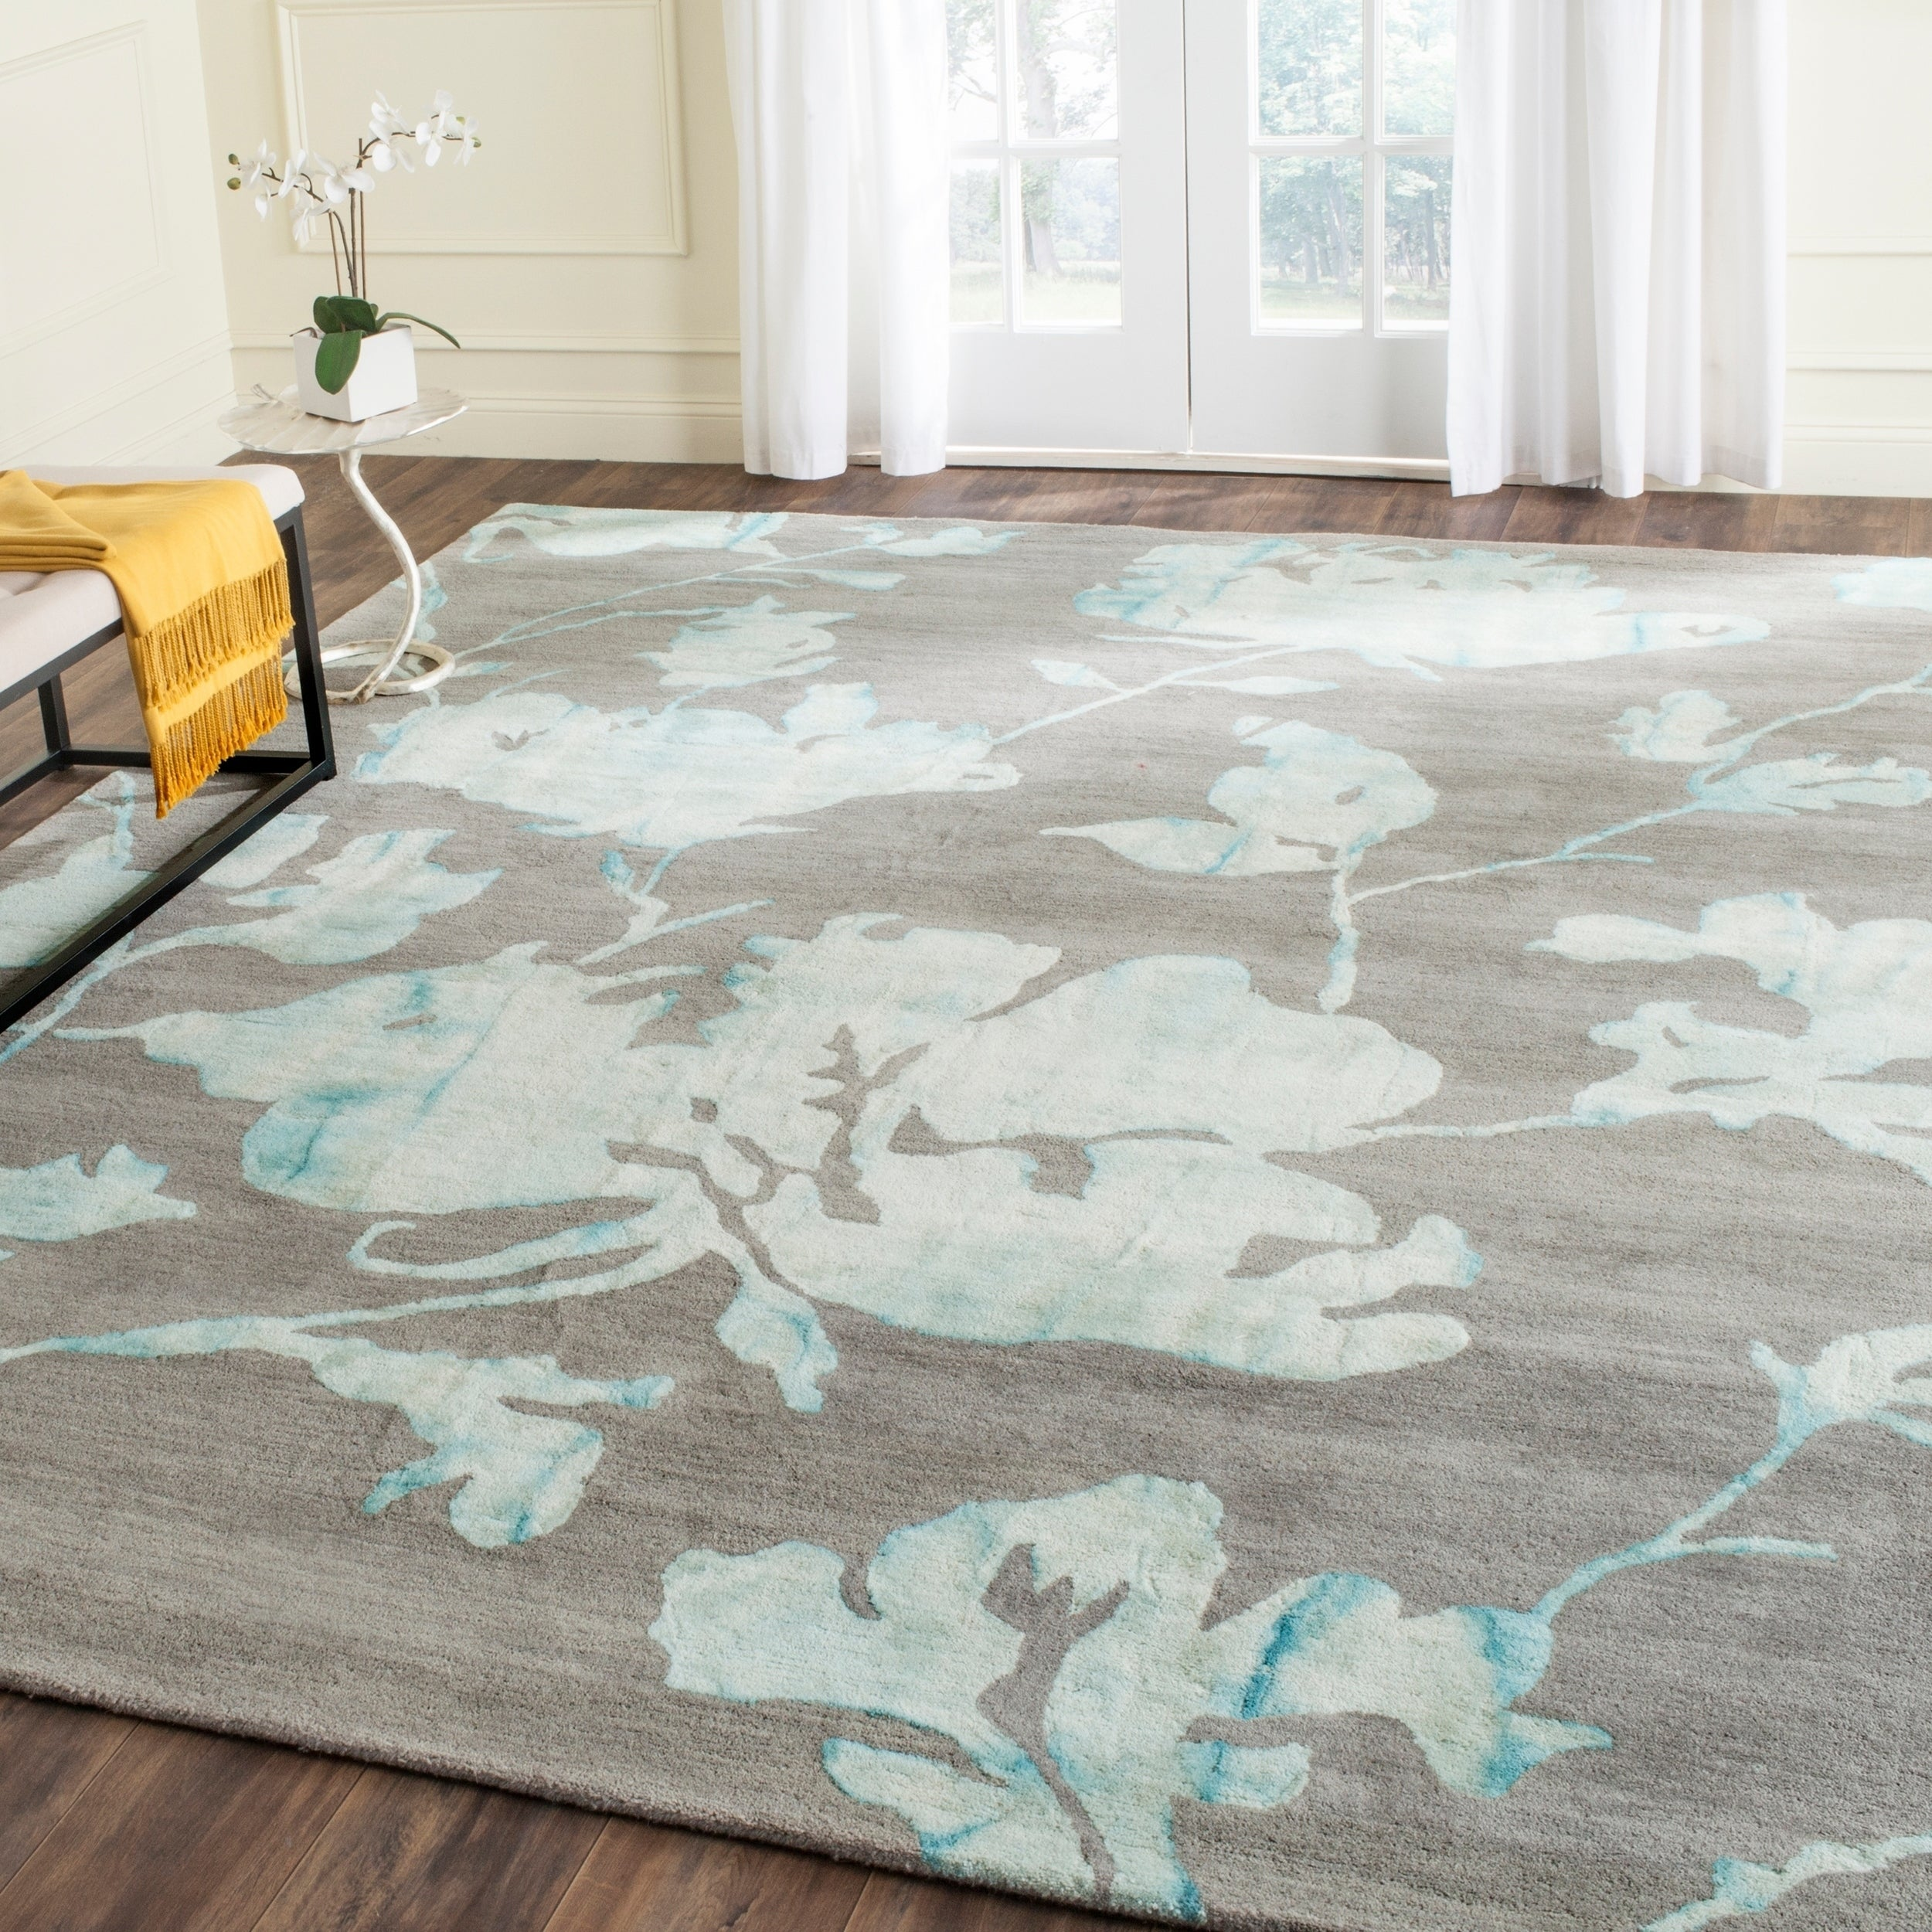 Rug Vintage 5x8 Rugs Compare Prices At Nextag